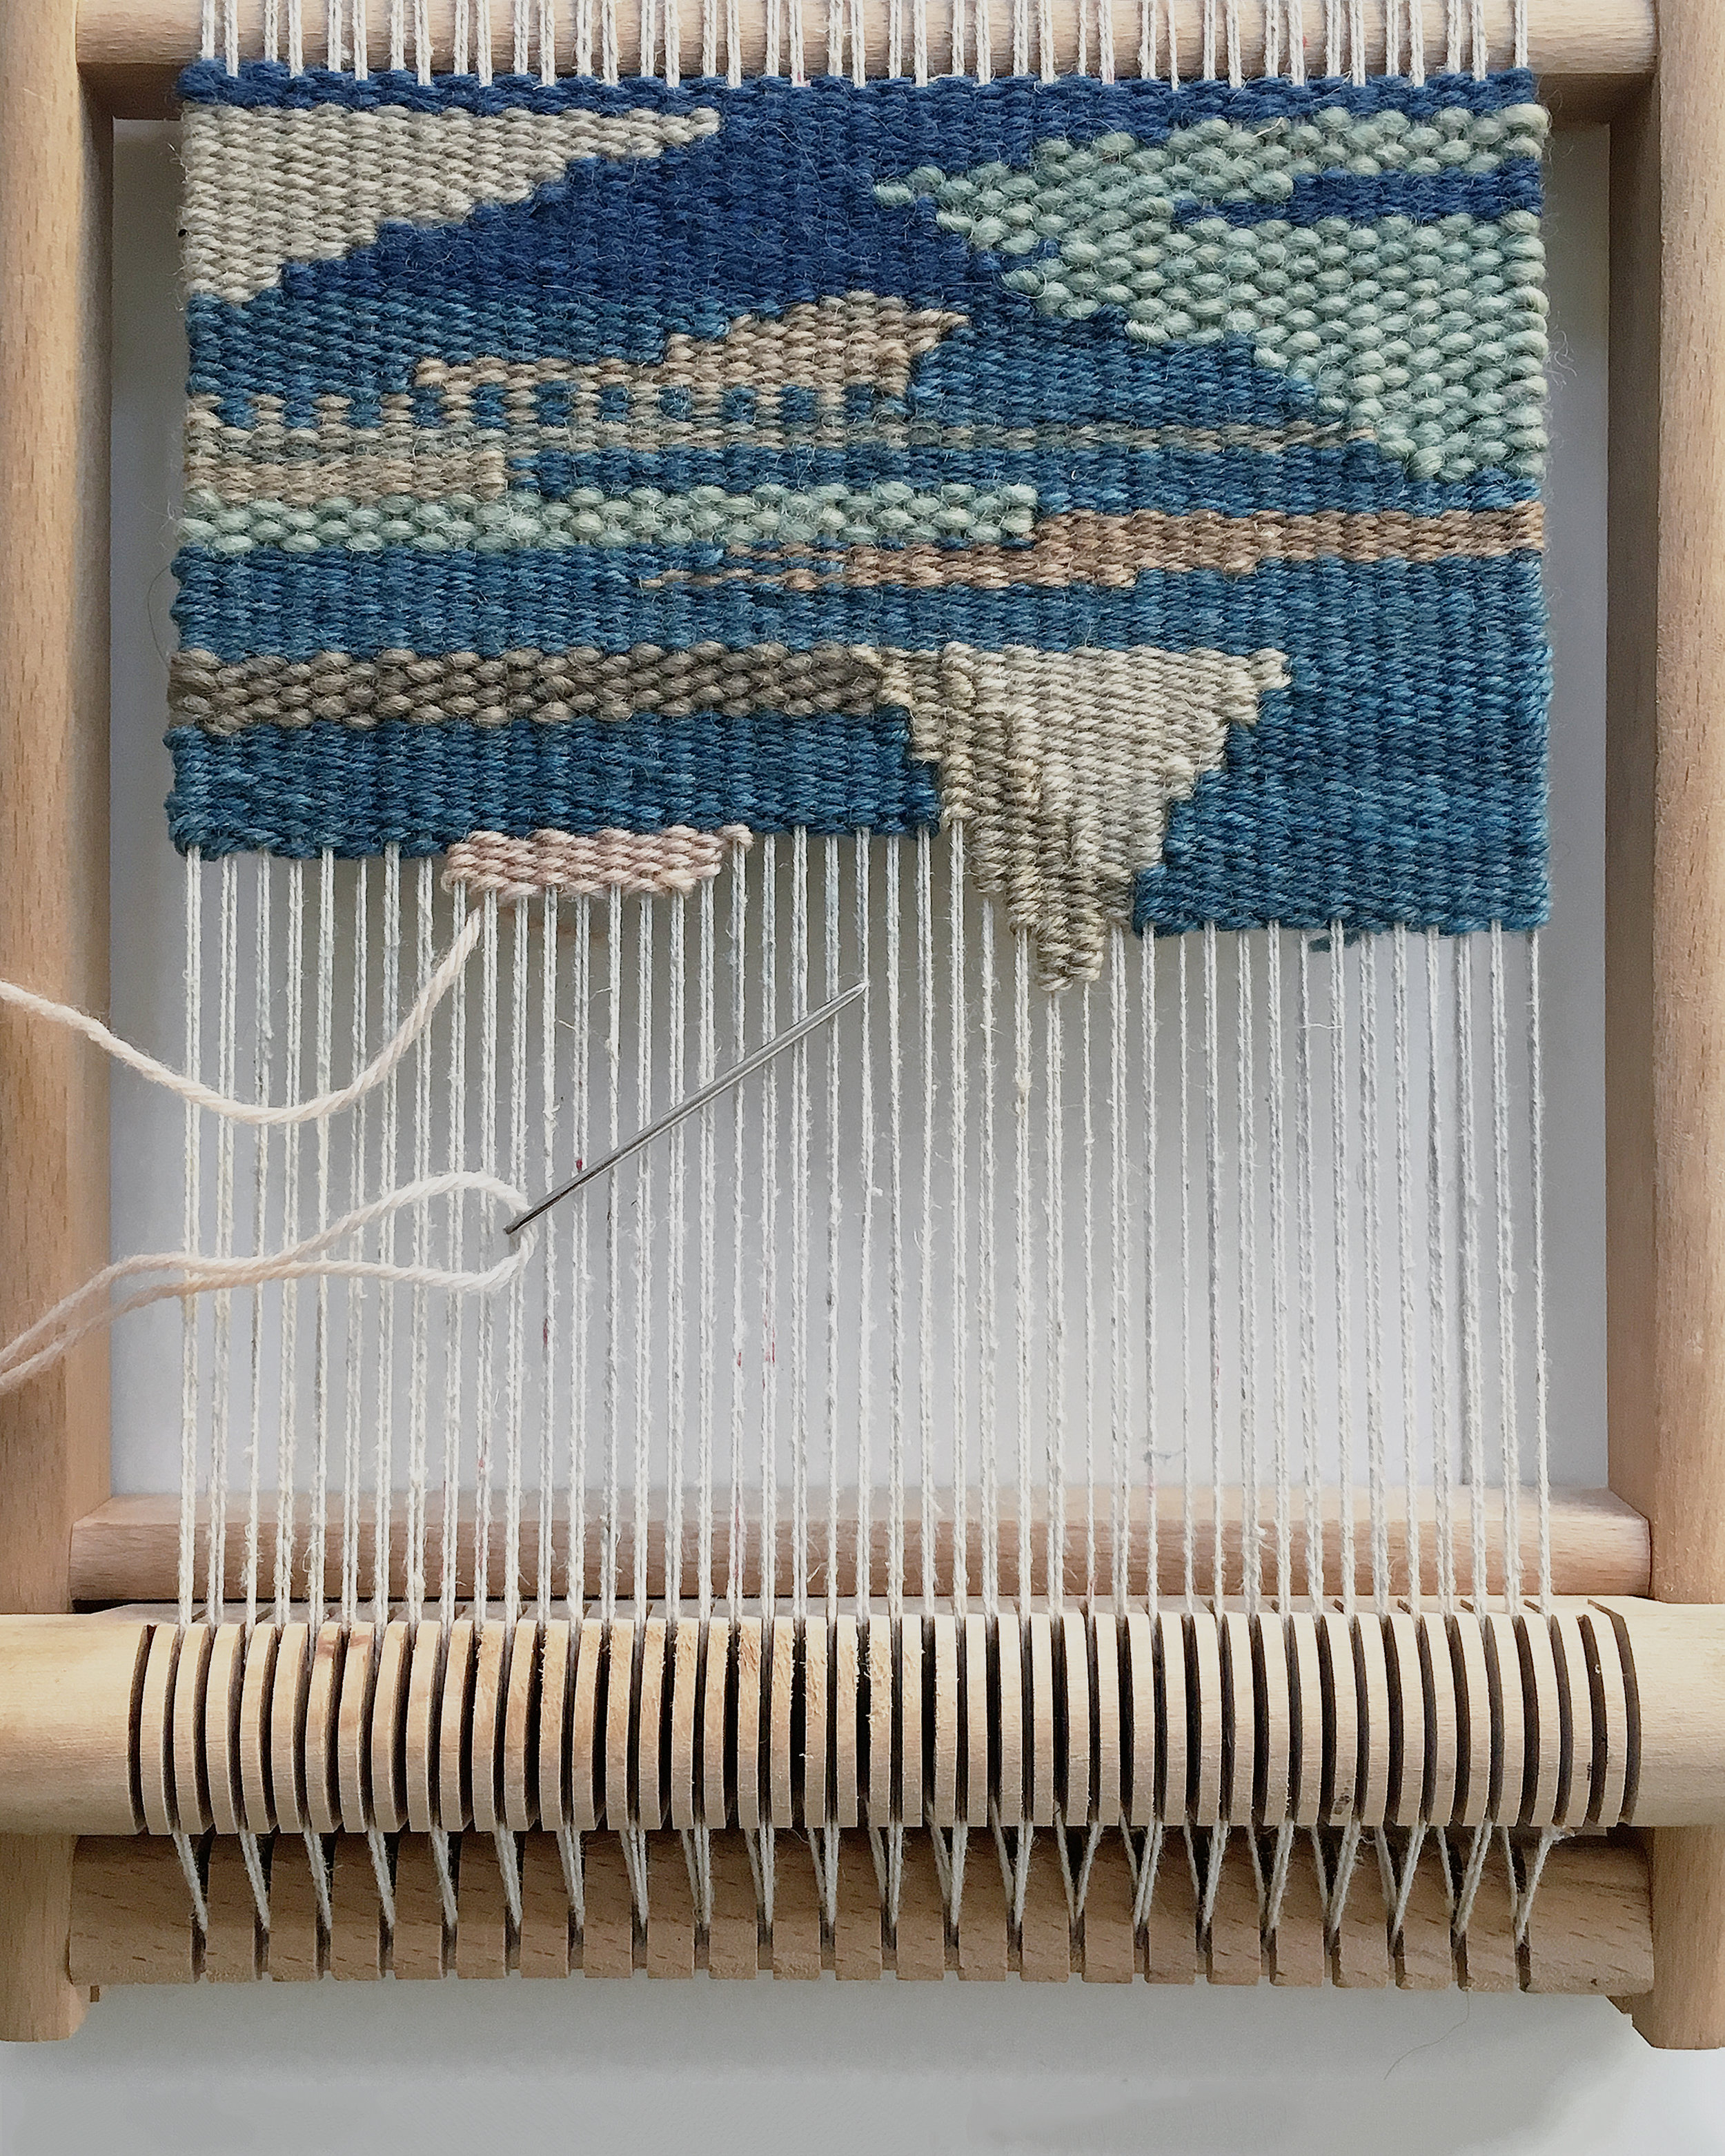 Weaving a free weave on a frame loom - a few rows every day #weaving #frameloom #loom #handwoven #tapestry